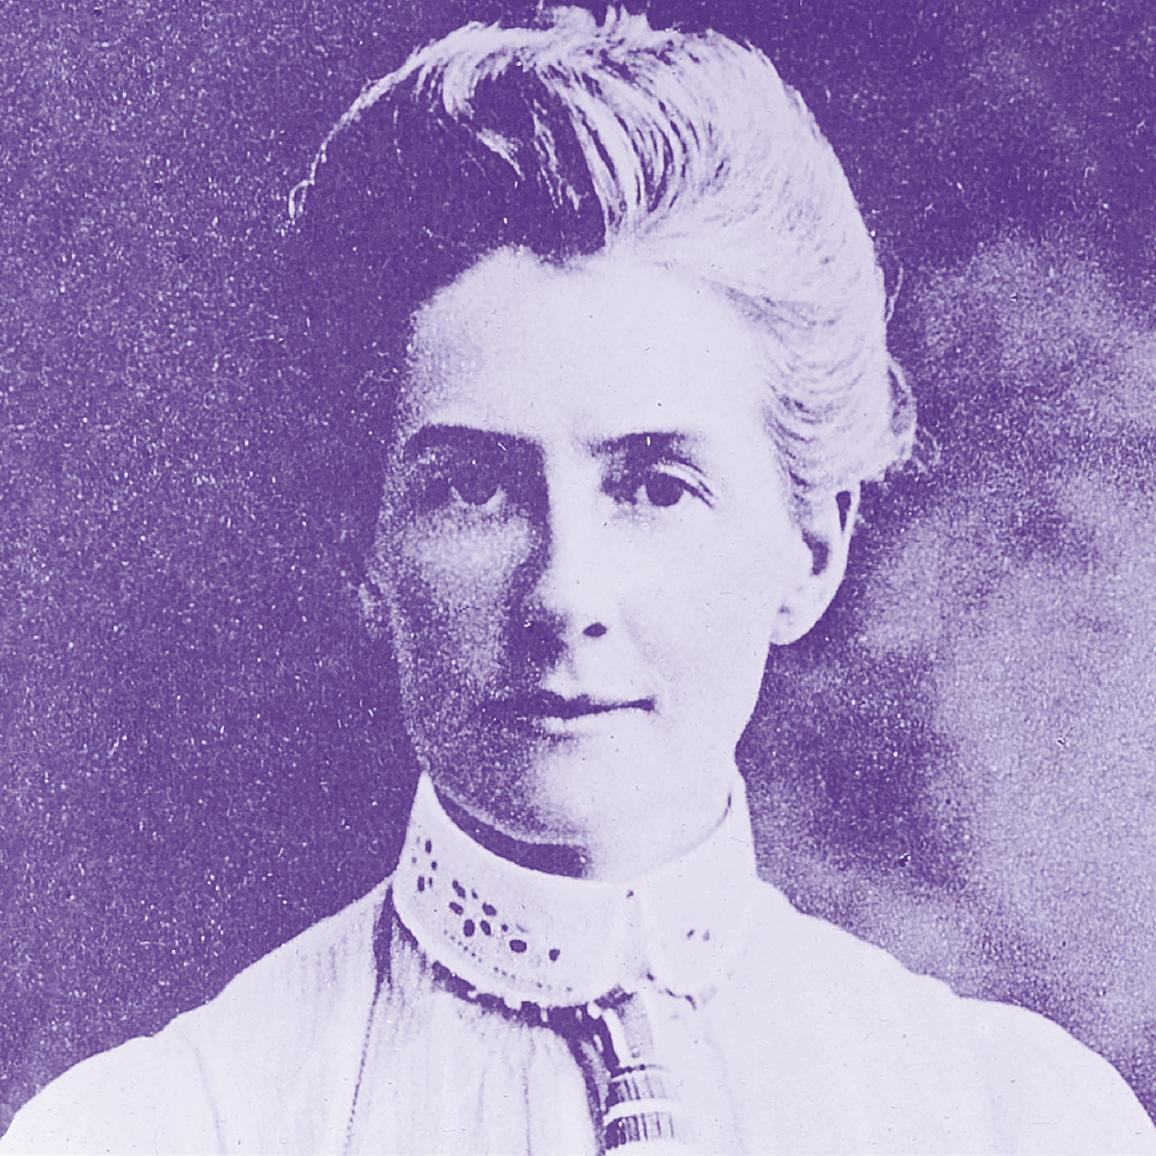 7am today marks 100 years since WWI Norfolk nurse #EdithCavell was executed in Brussels #ForumCavell http://t.co/UGF32D3Fhv